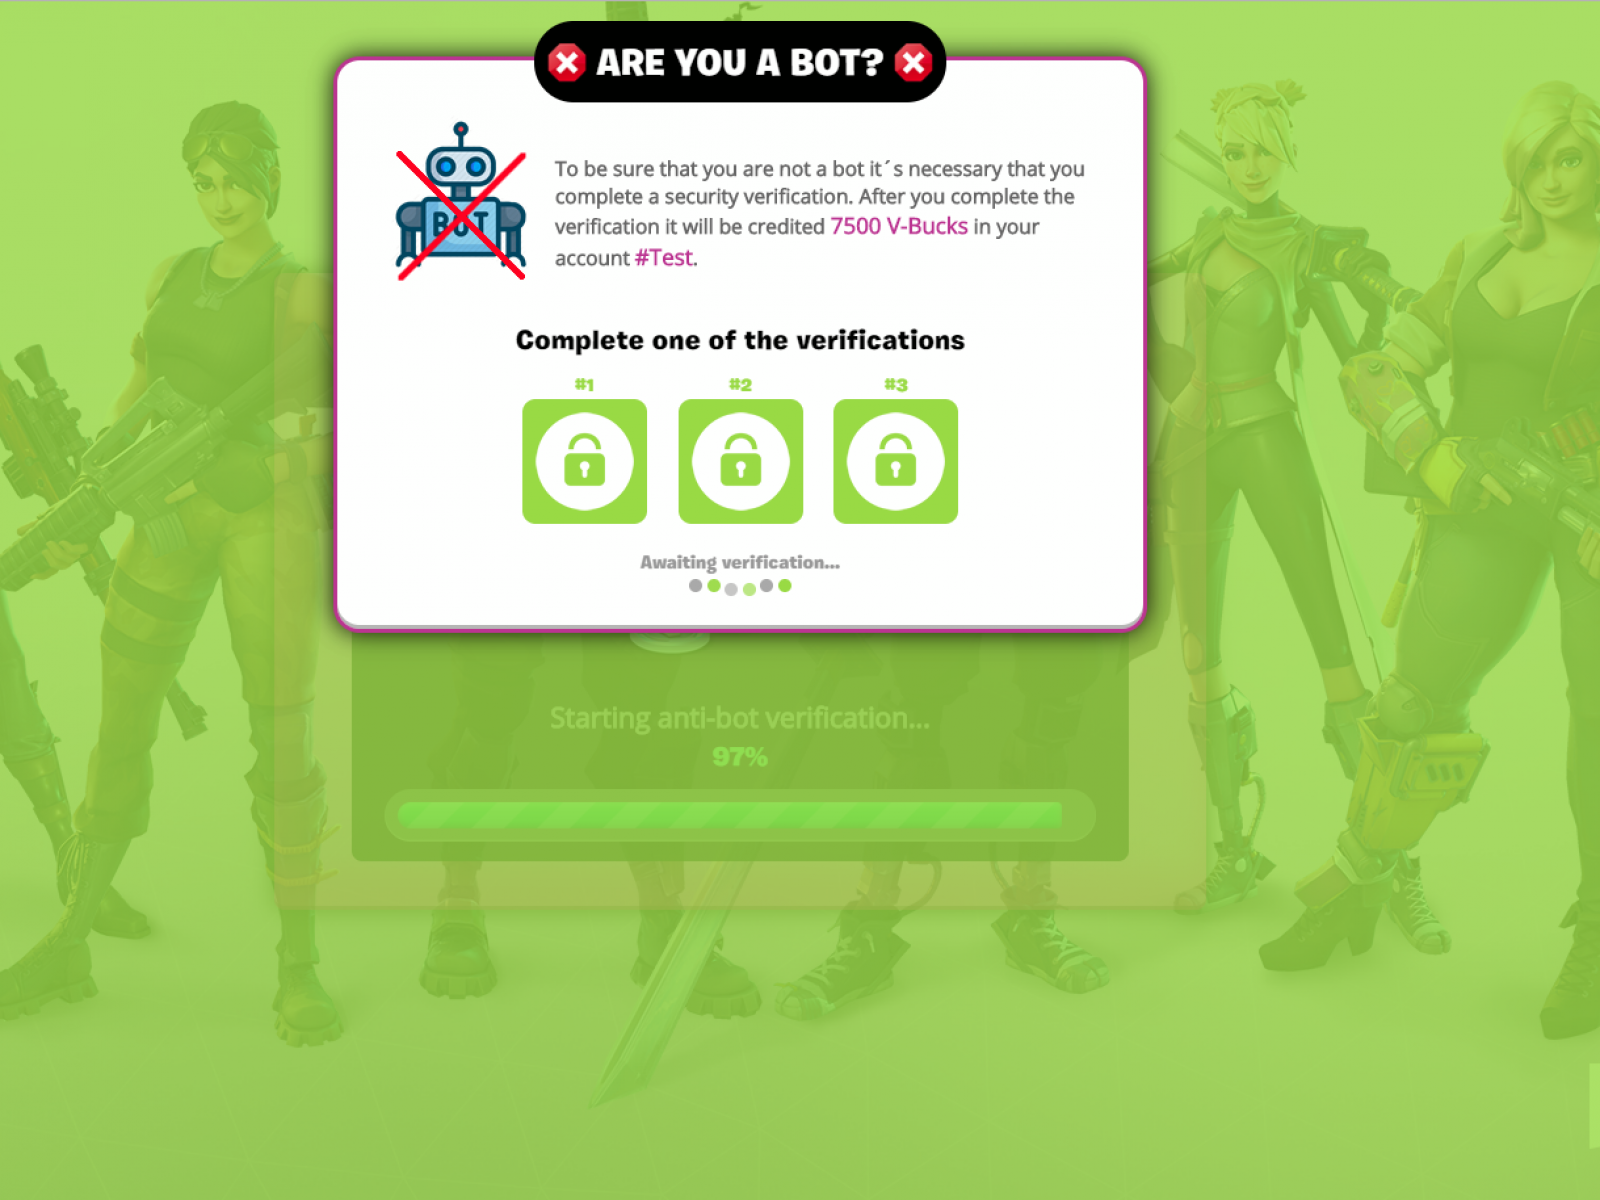 Freevbucks Co fortnite' free v-bucks scam: how to spot fake websites